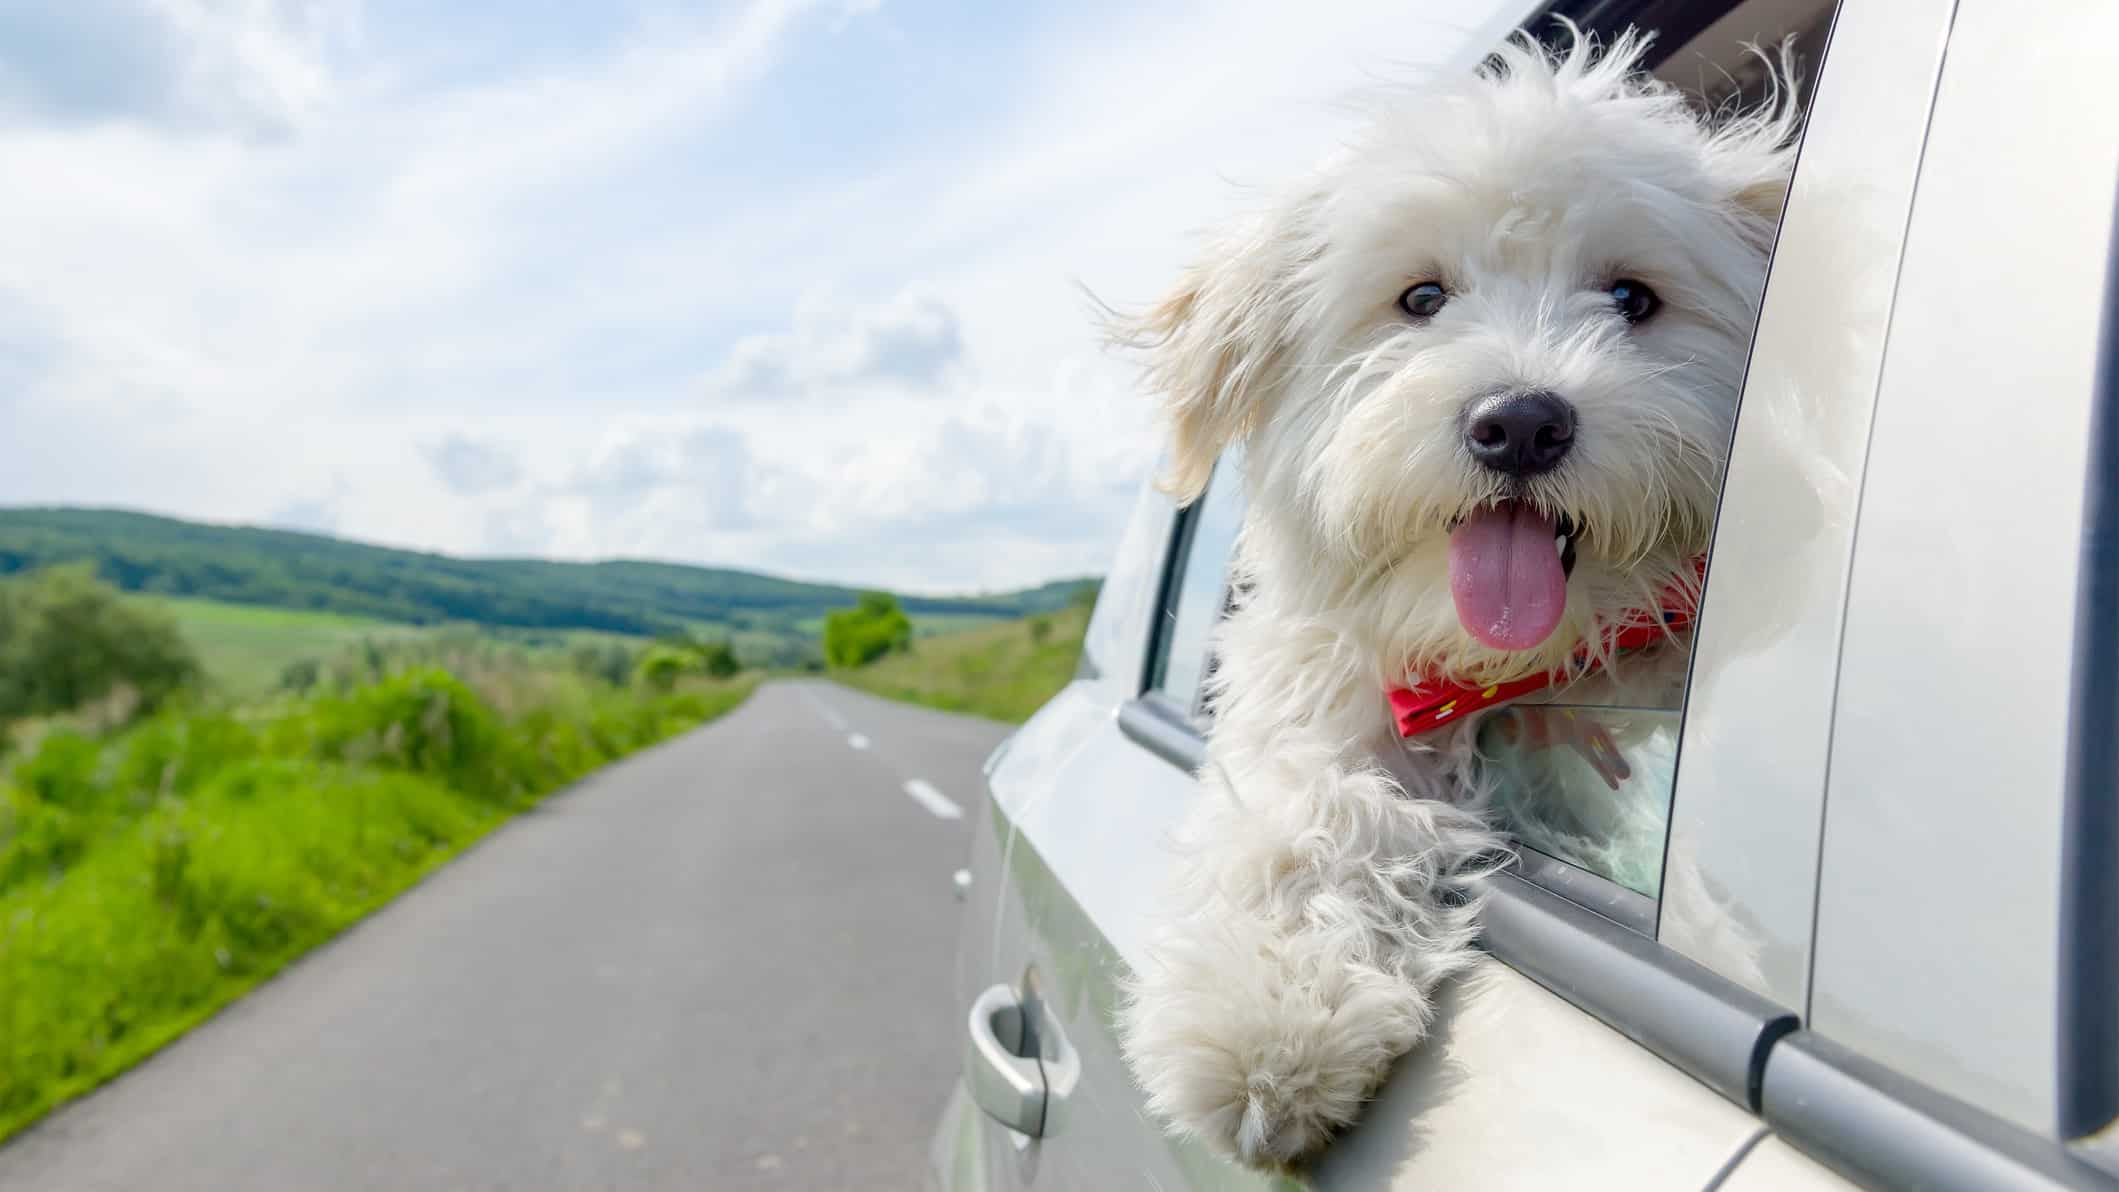 a happy dog puts its head out of a car window with a road in the background, indicating a positive share price for ASX automotive shares